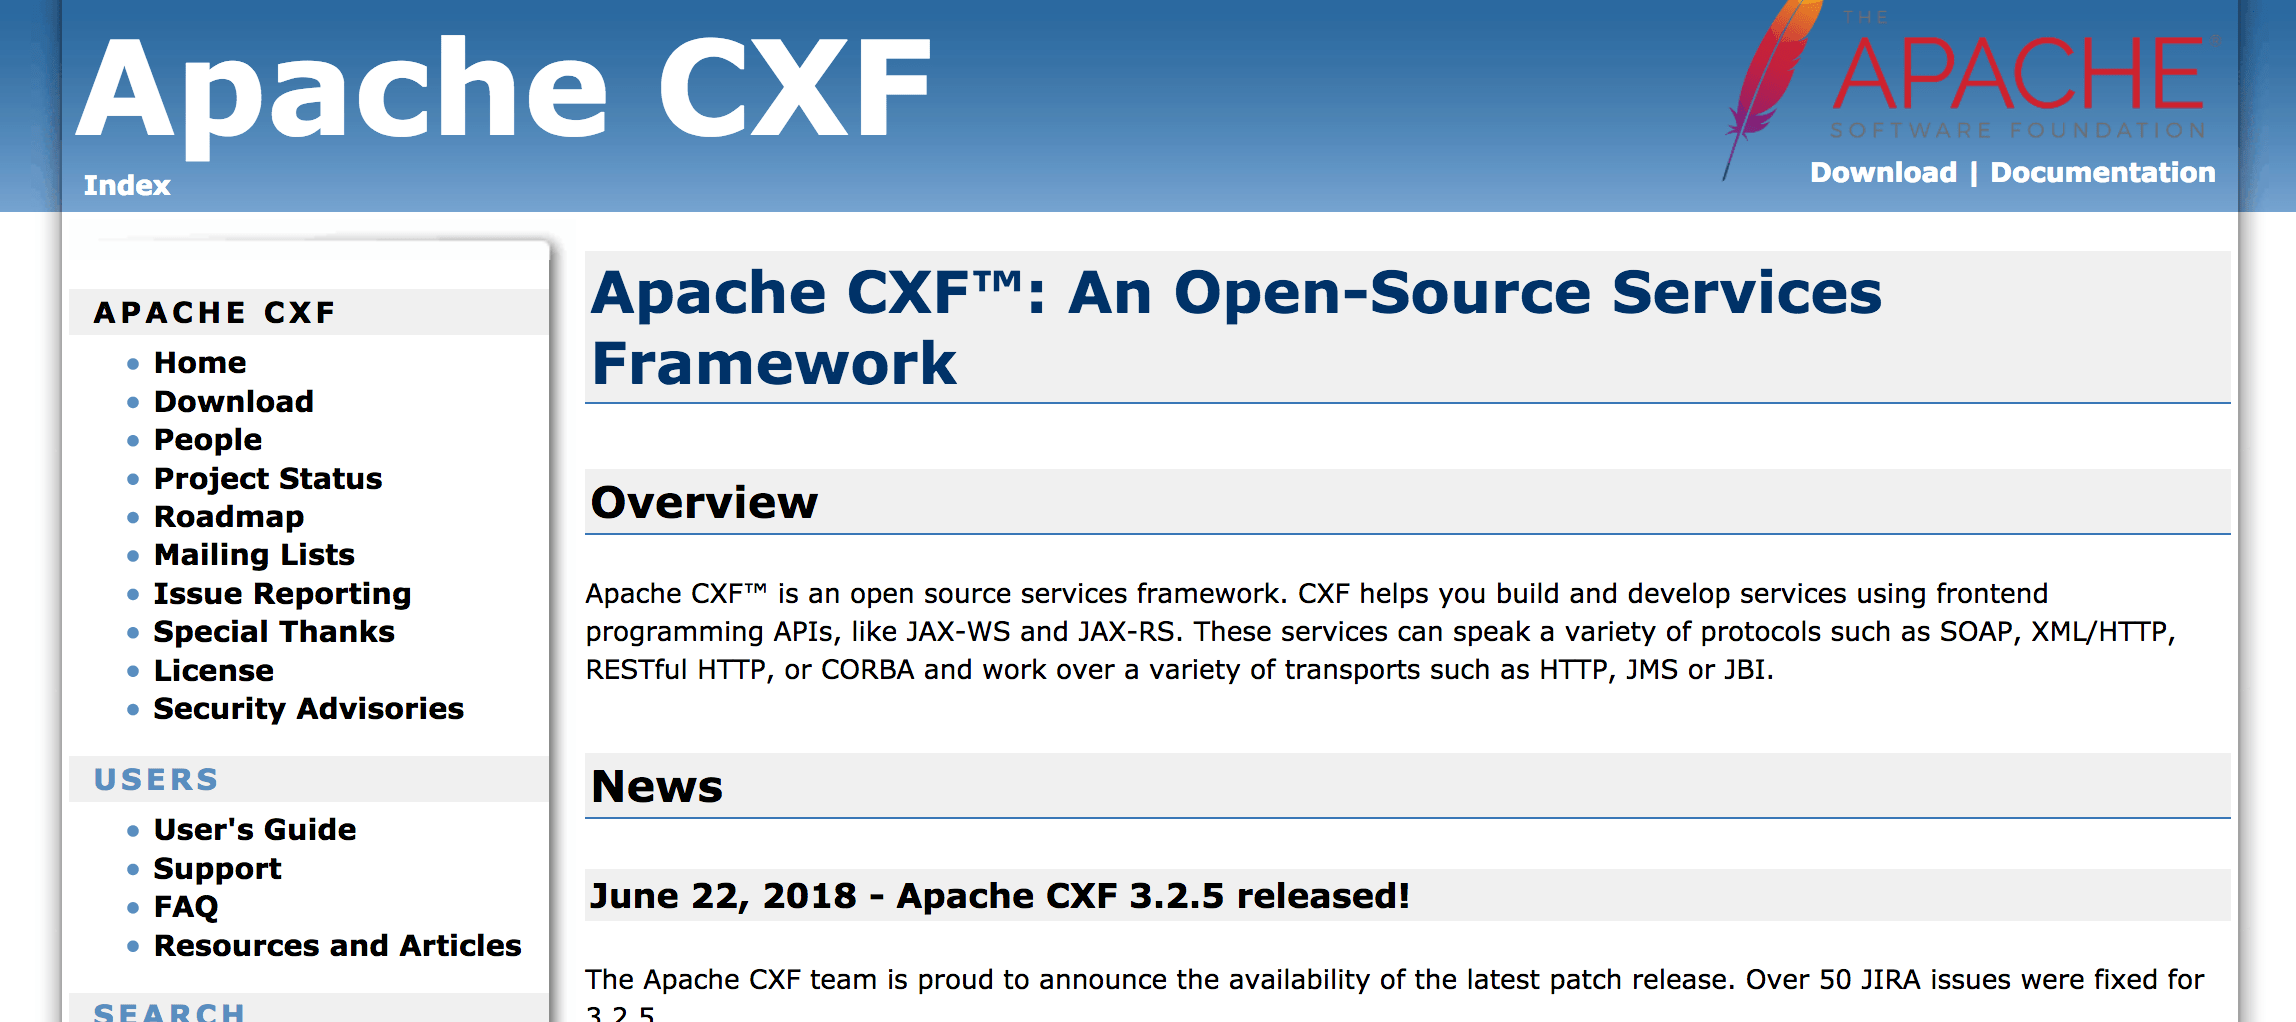 Apache CXF website home page